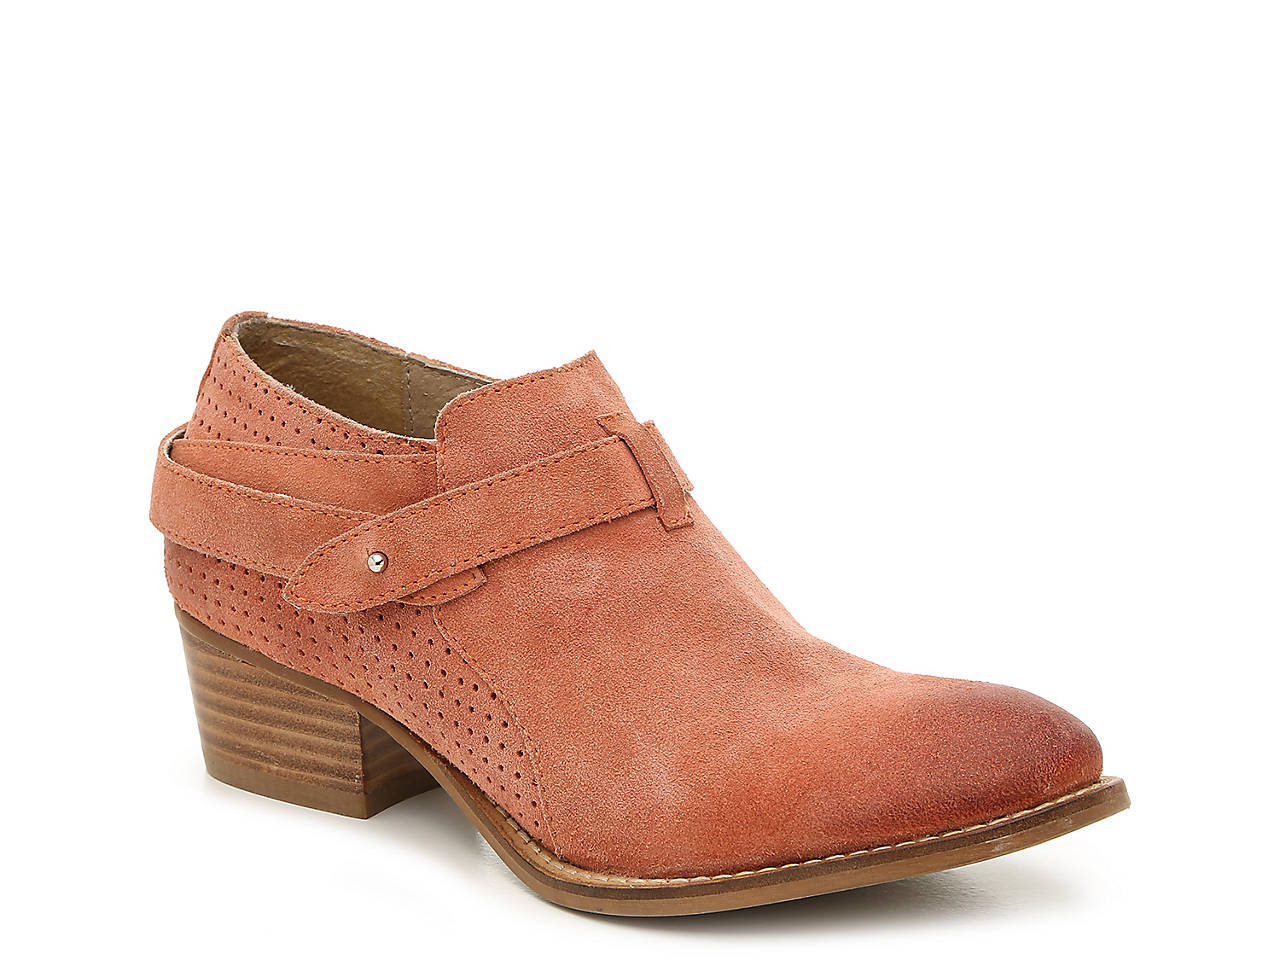 ca1ffd7997db Charles by Charles David Yesenia Bootie Women s Shoes